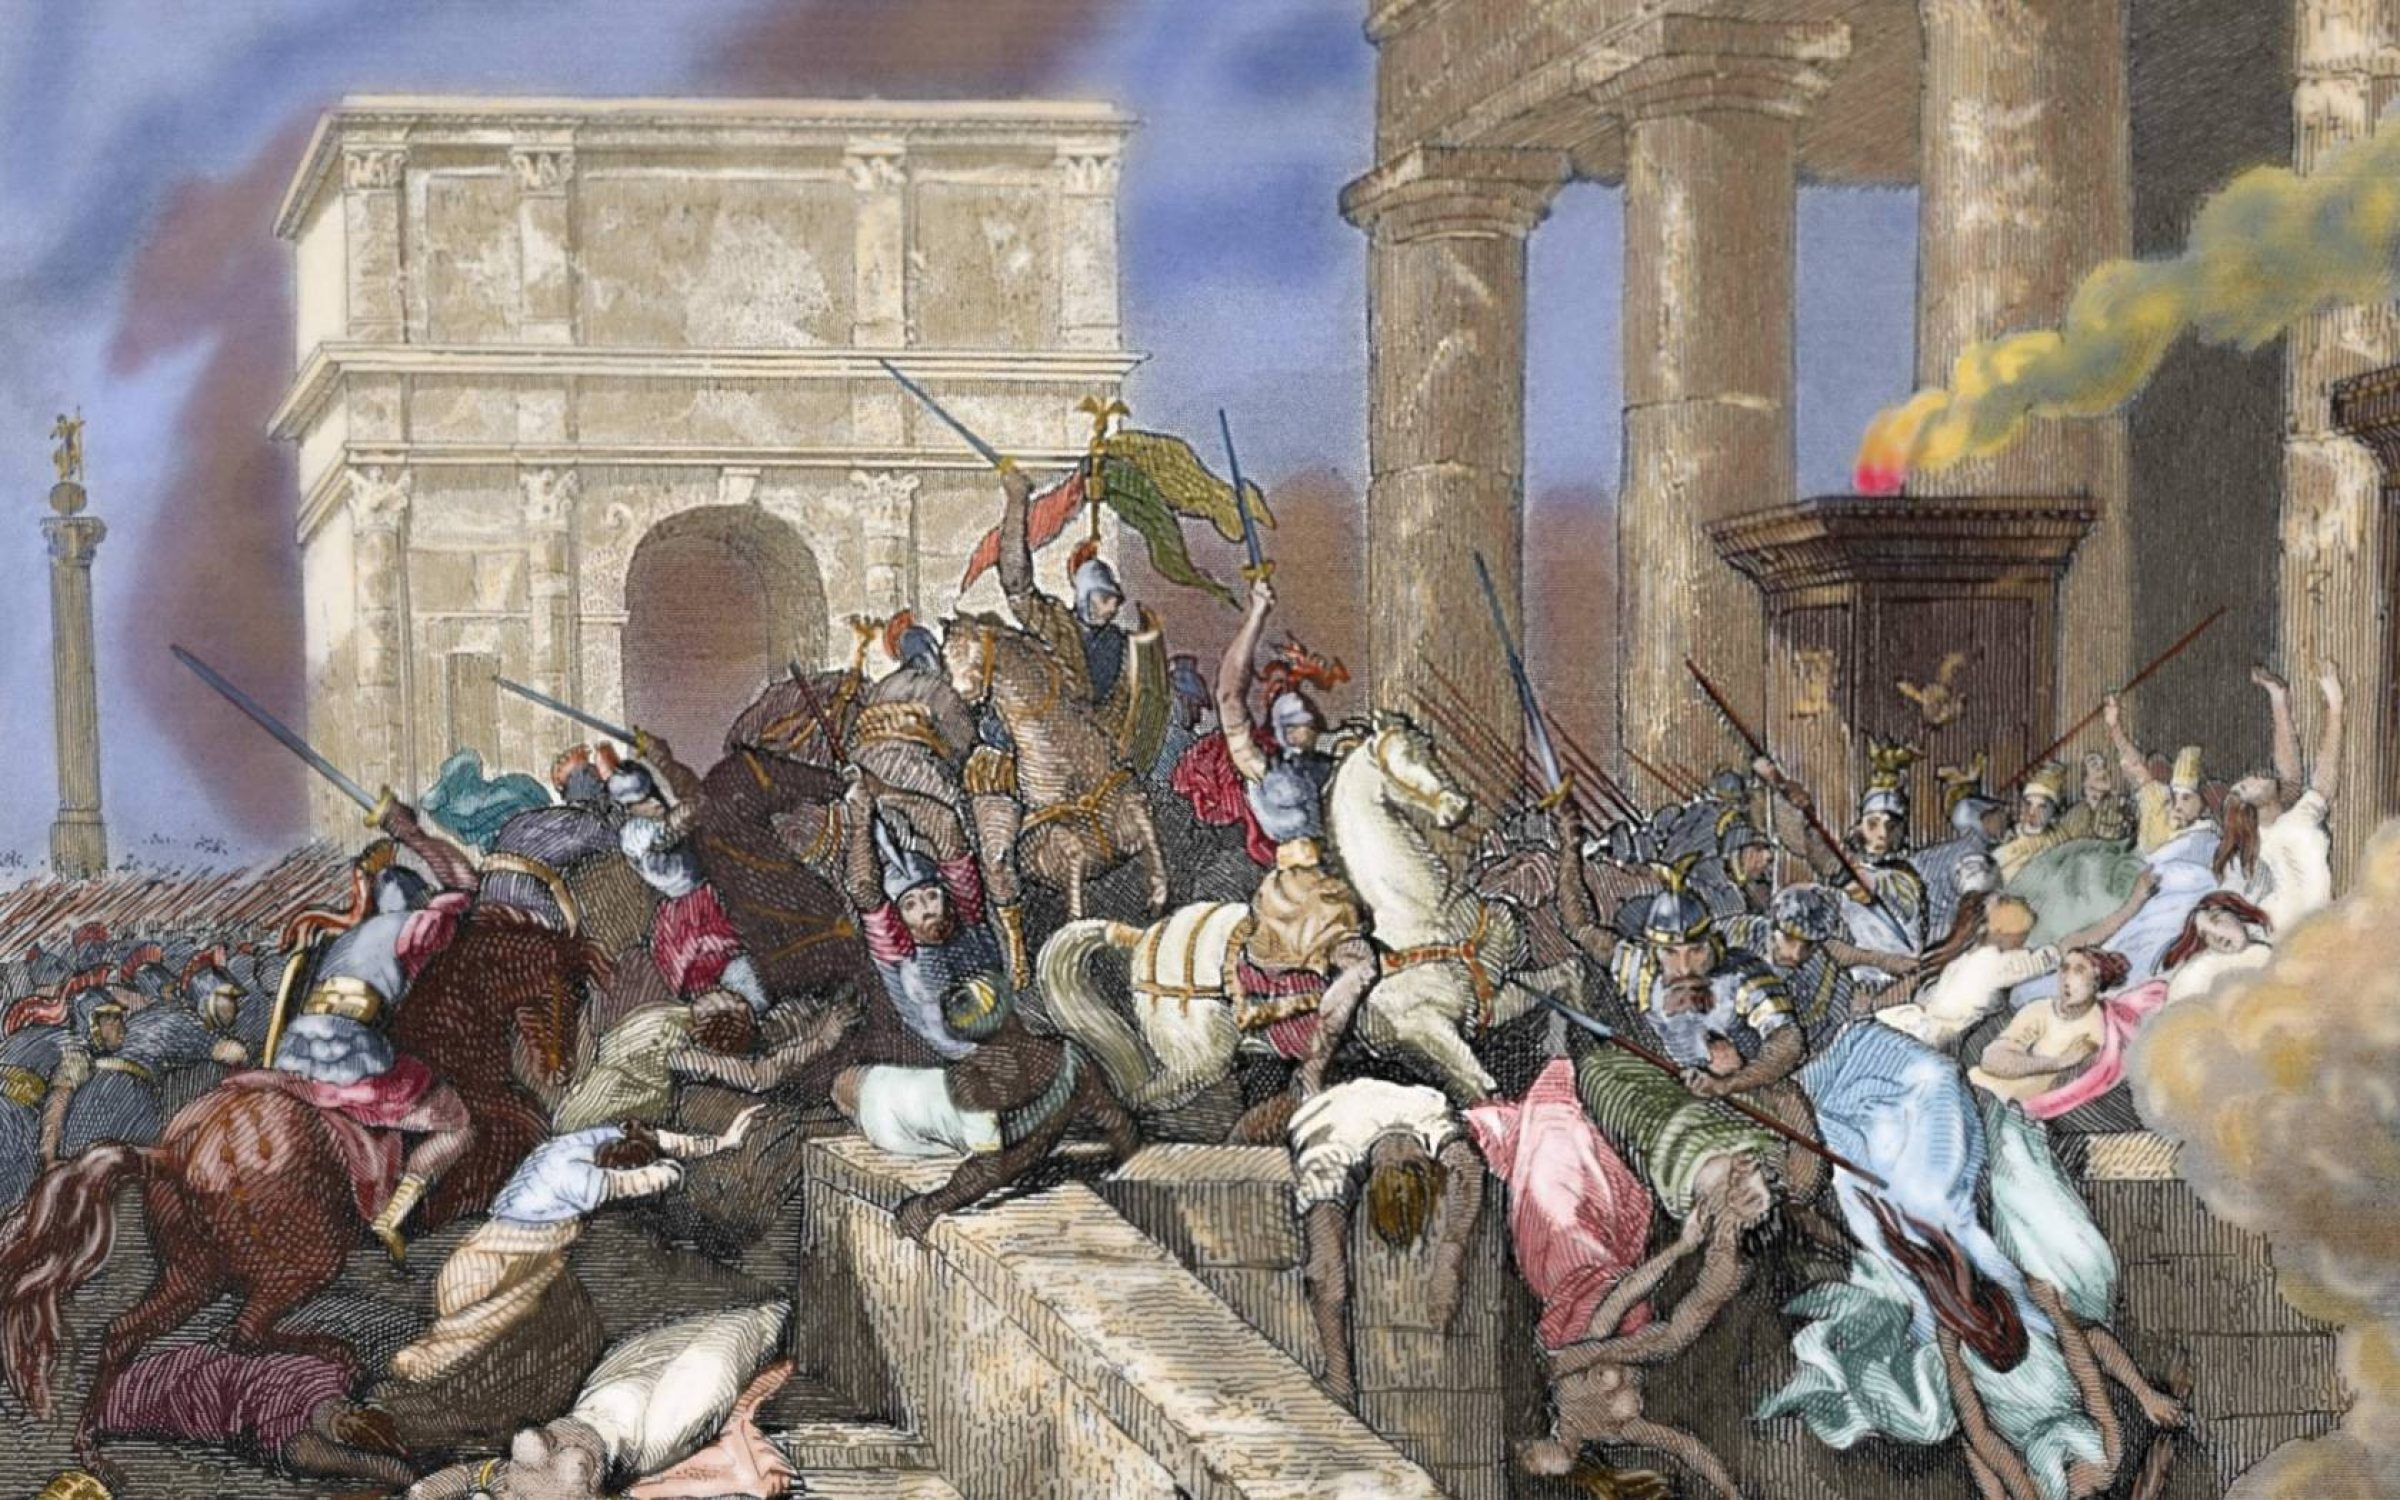 Engraving of the Sack of Rome by the Visigoths led by Alaric I in 410, during the reign of Emperor Honorius.